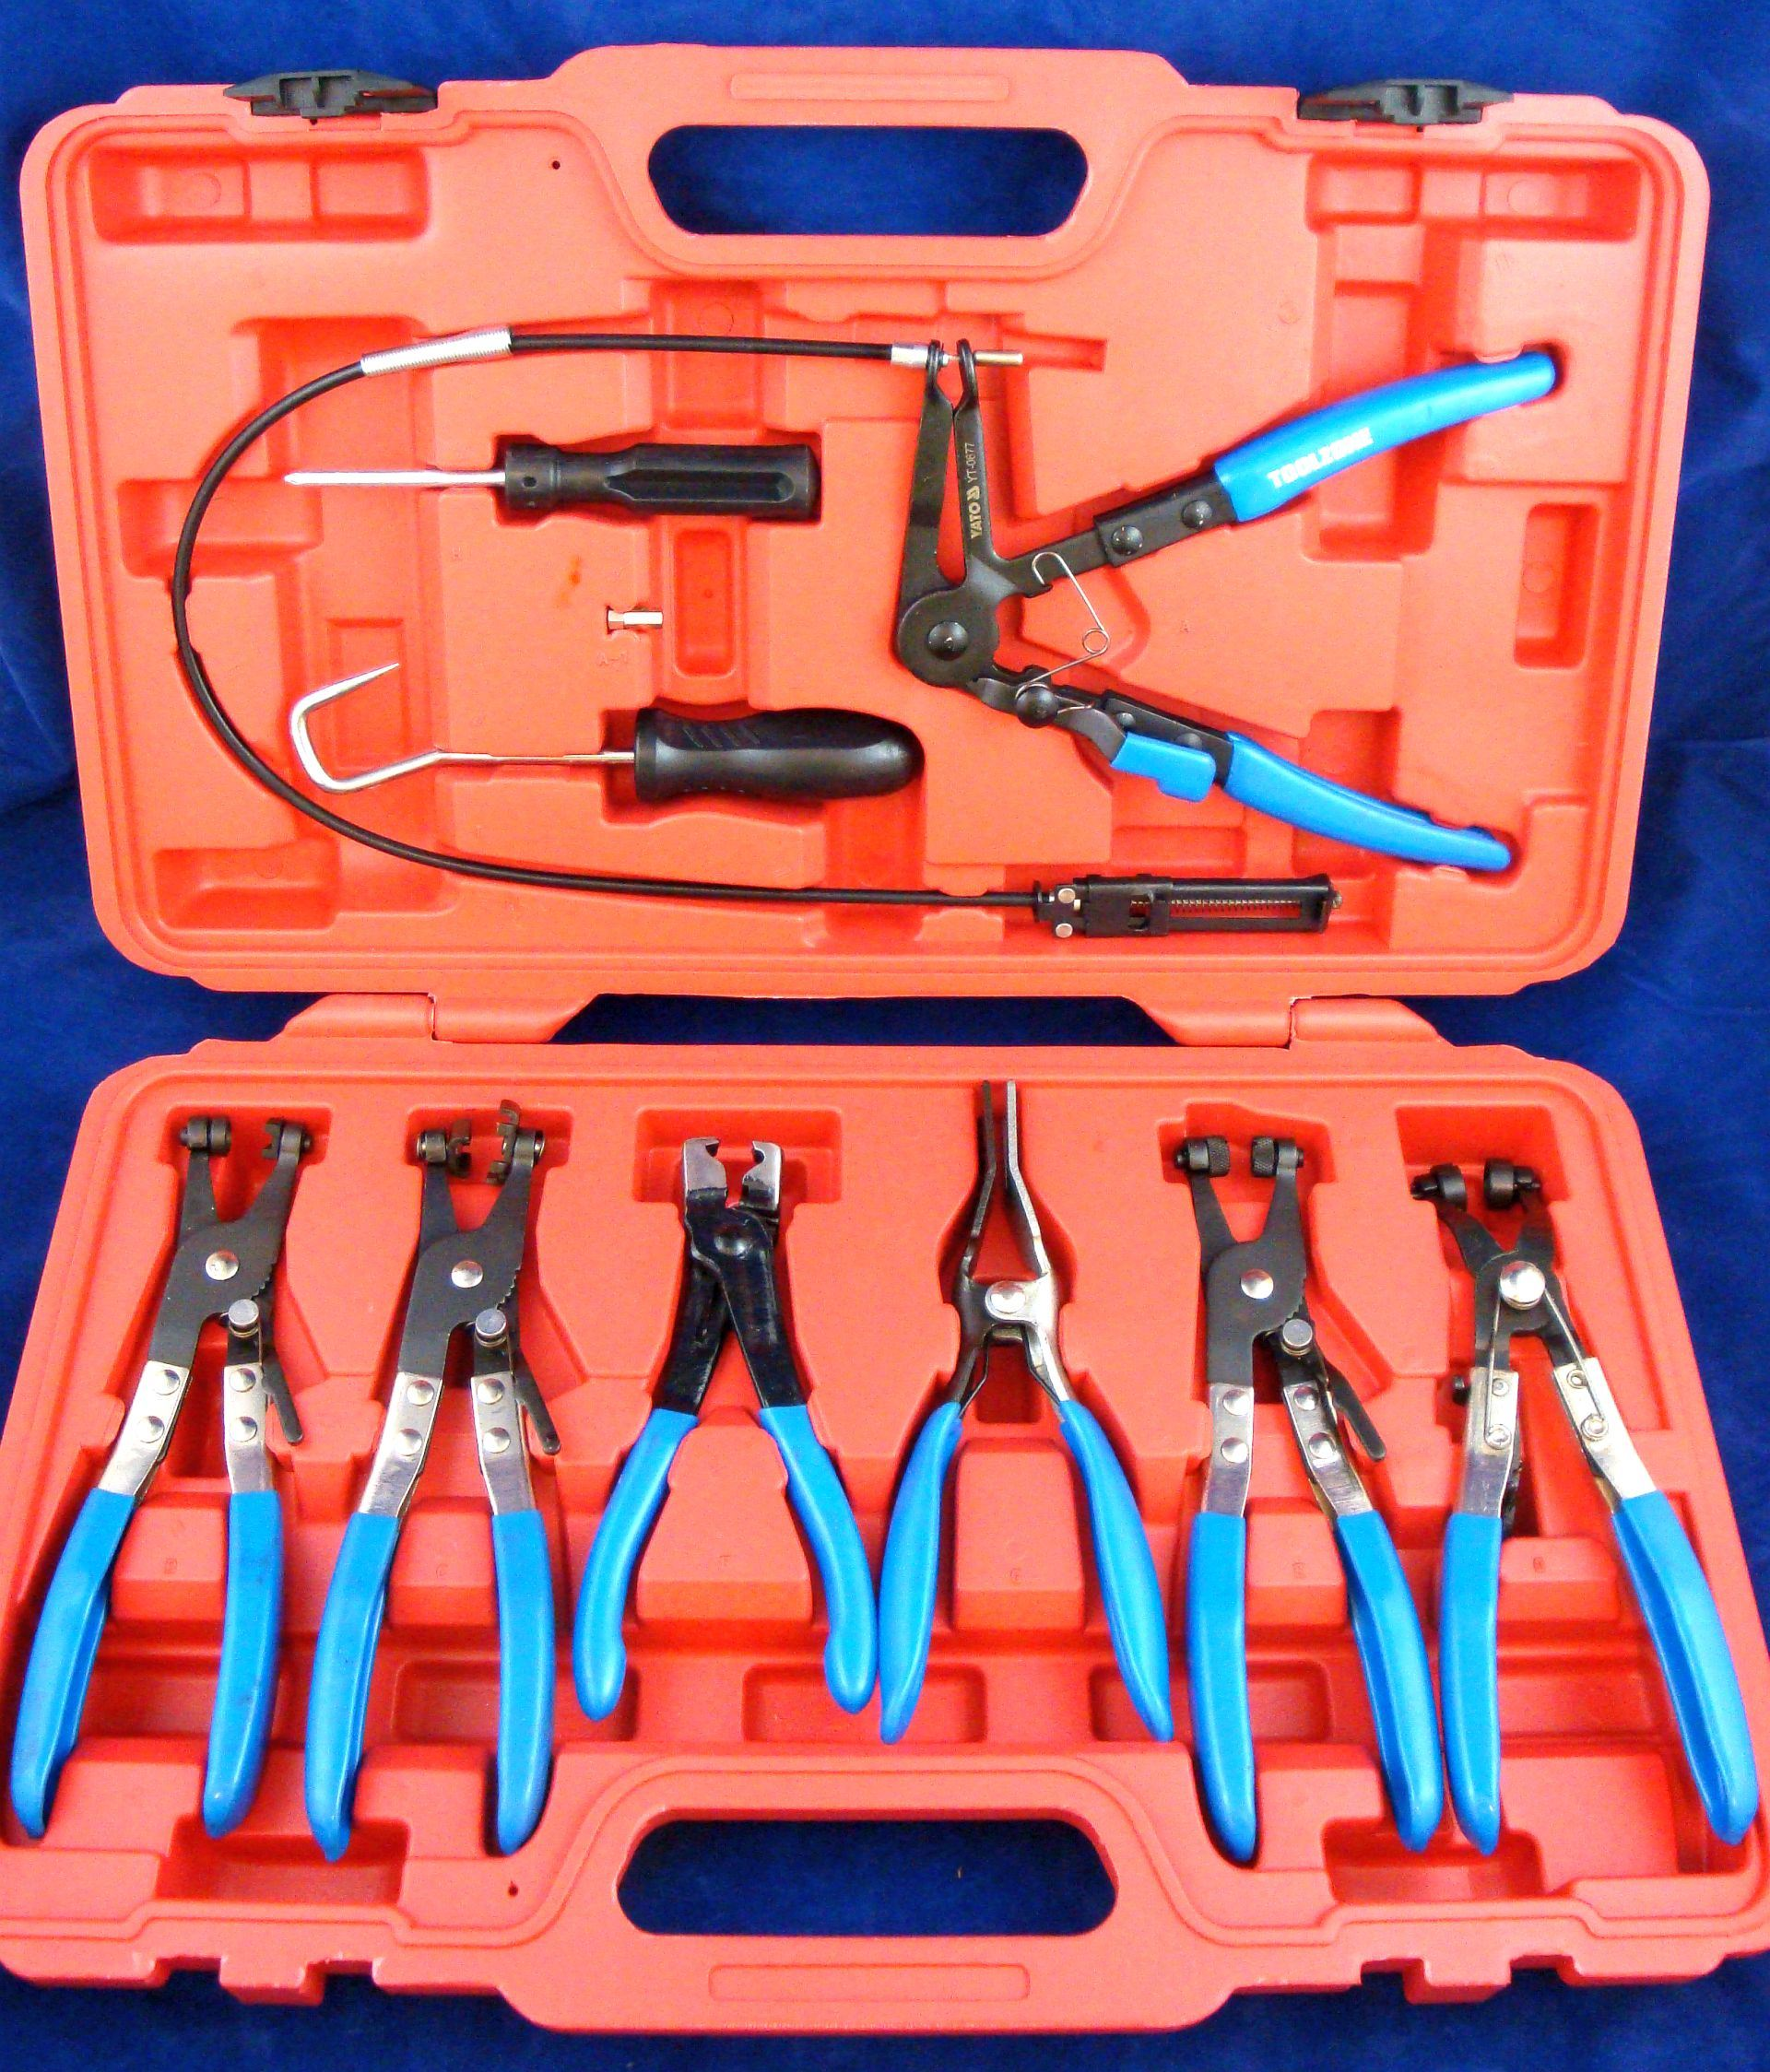 Toolzone 9Pc Hose Clamp Plier Set